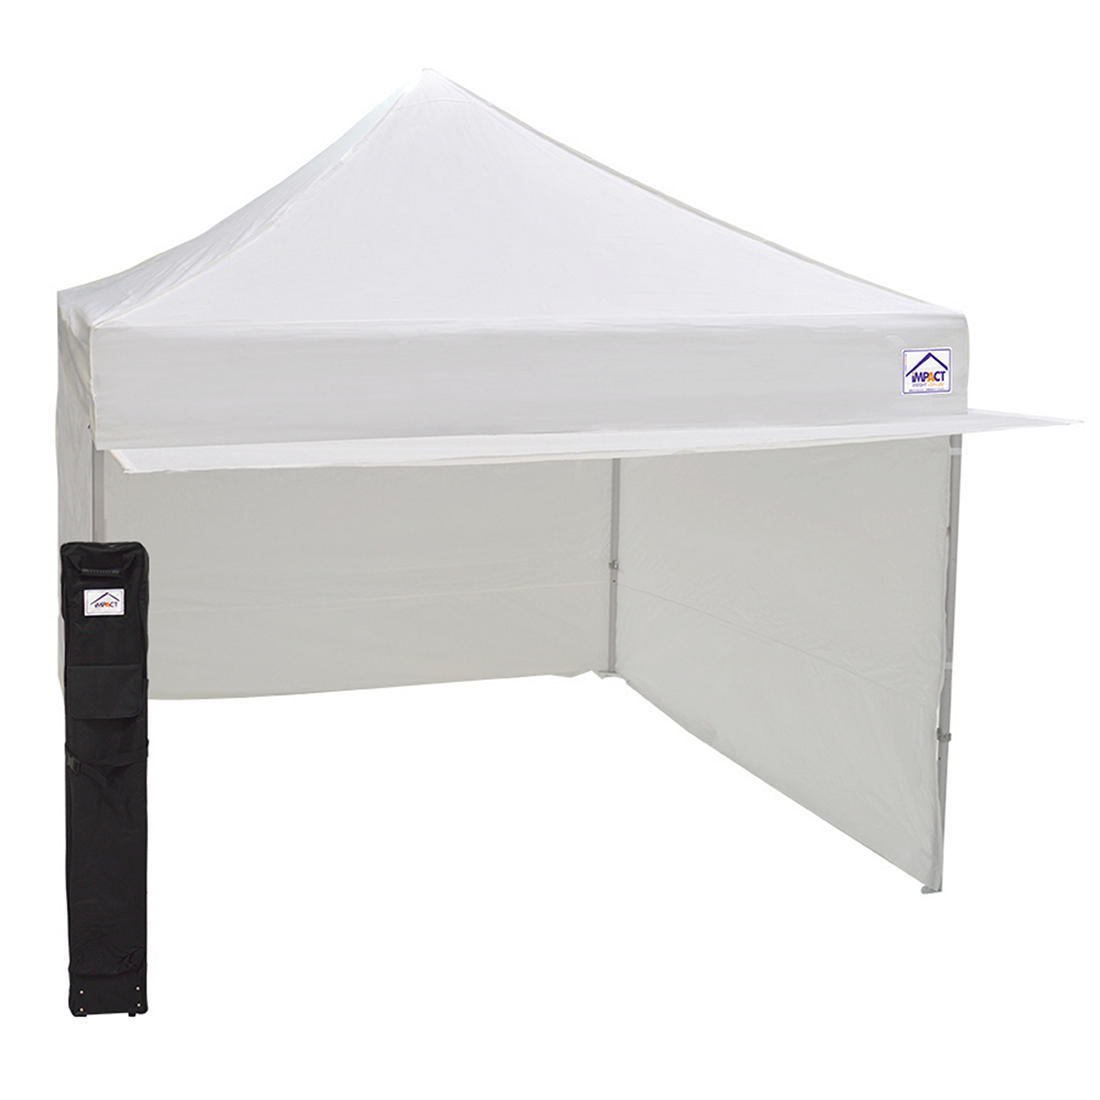 White Impact Canopy Beach Umbrella Table Accessories Drink Snack Cup Holders